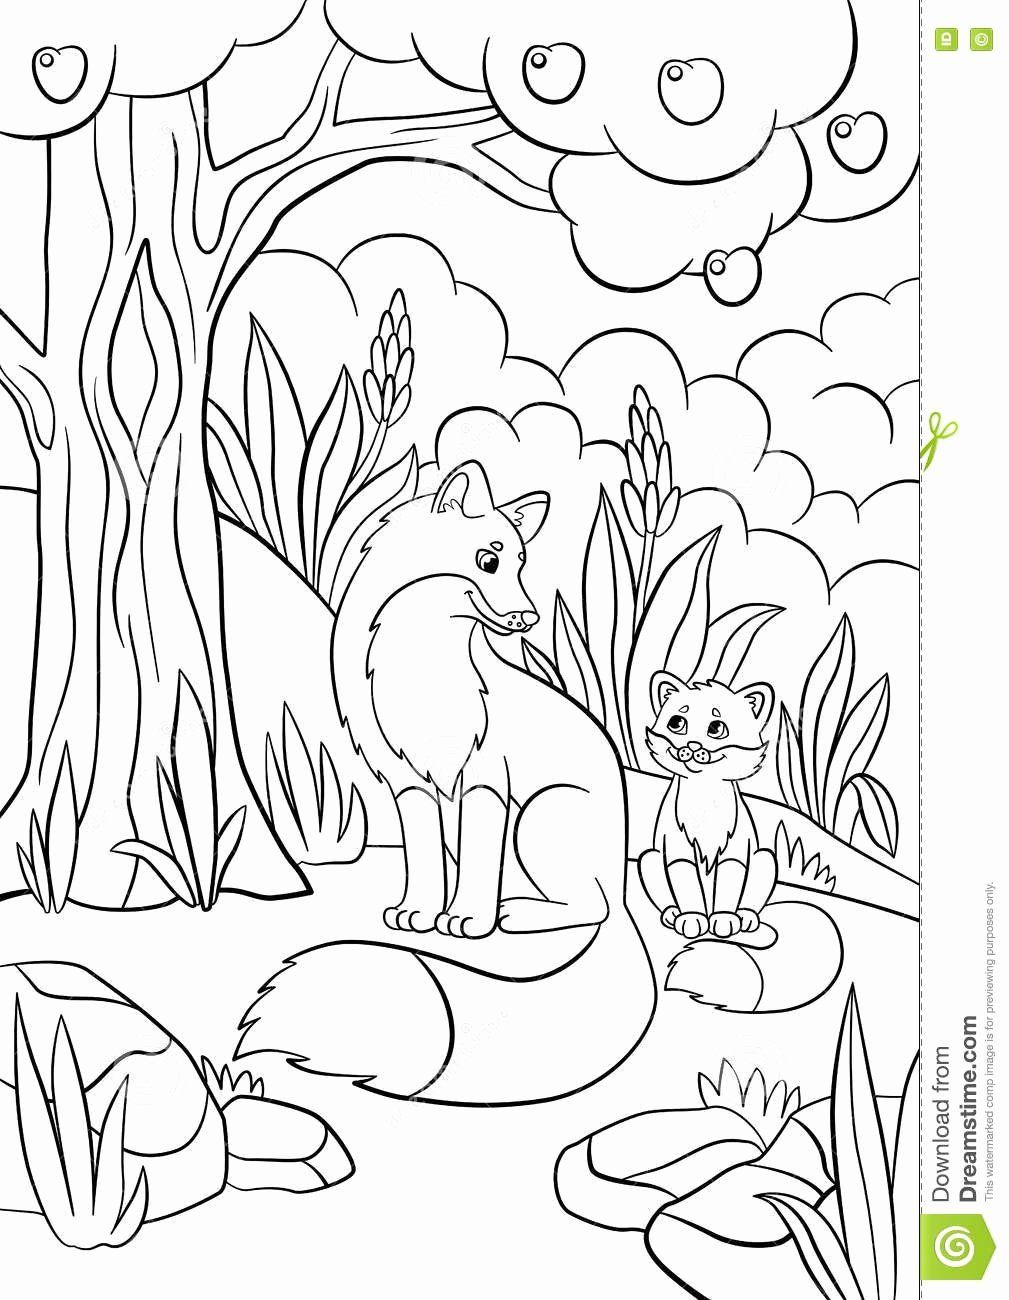 Wild Animals Coloring Pages Printable Awesome Coloring Pages Wild Animals Mother Fox With Her Little